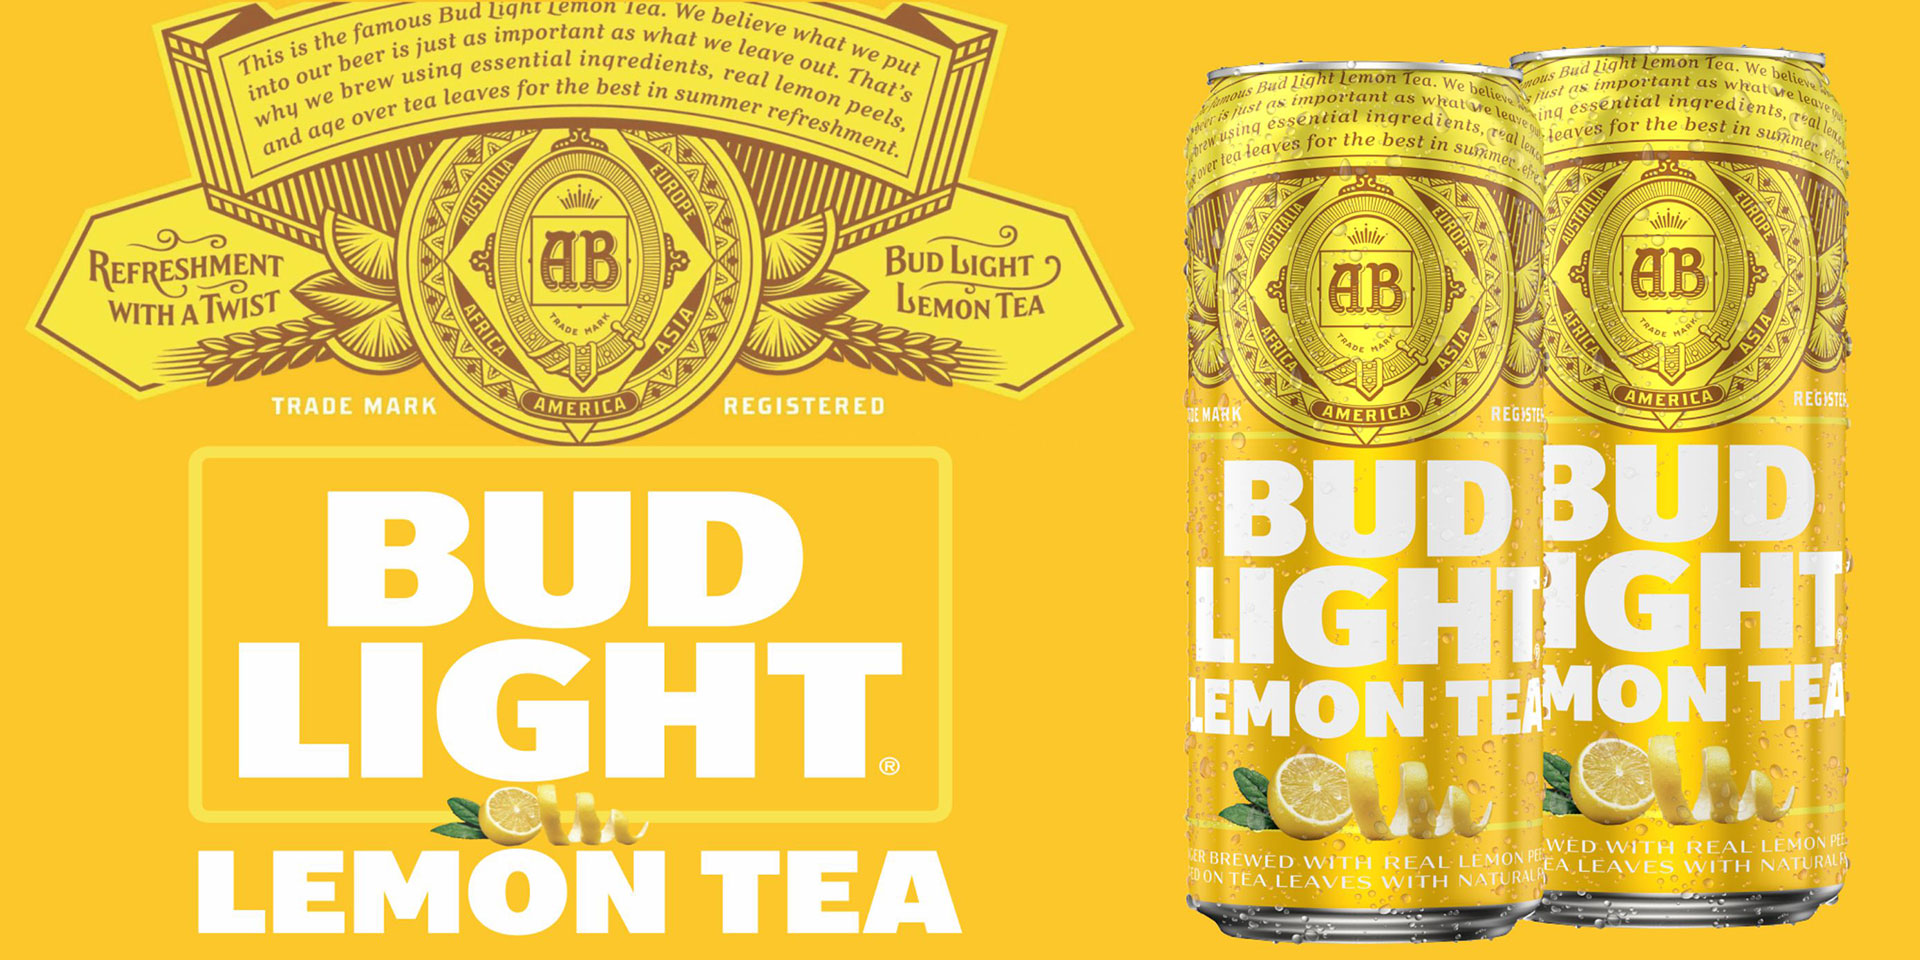 Bud Lt Lemon Tea